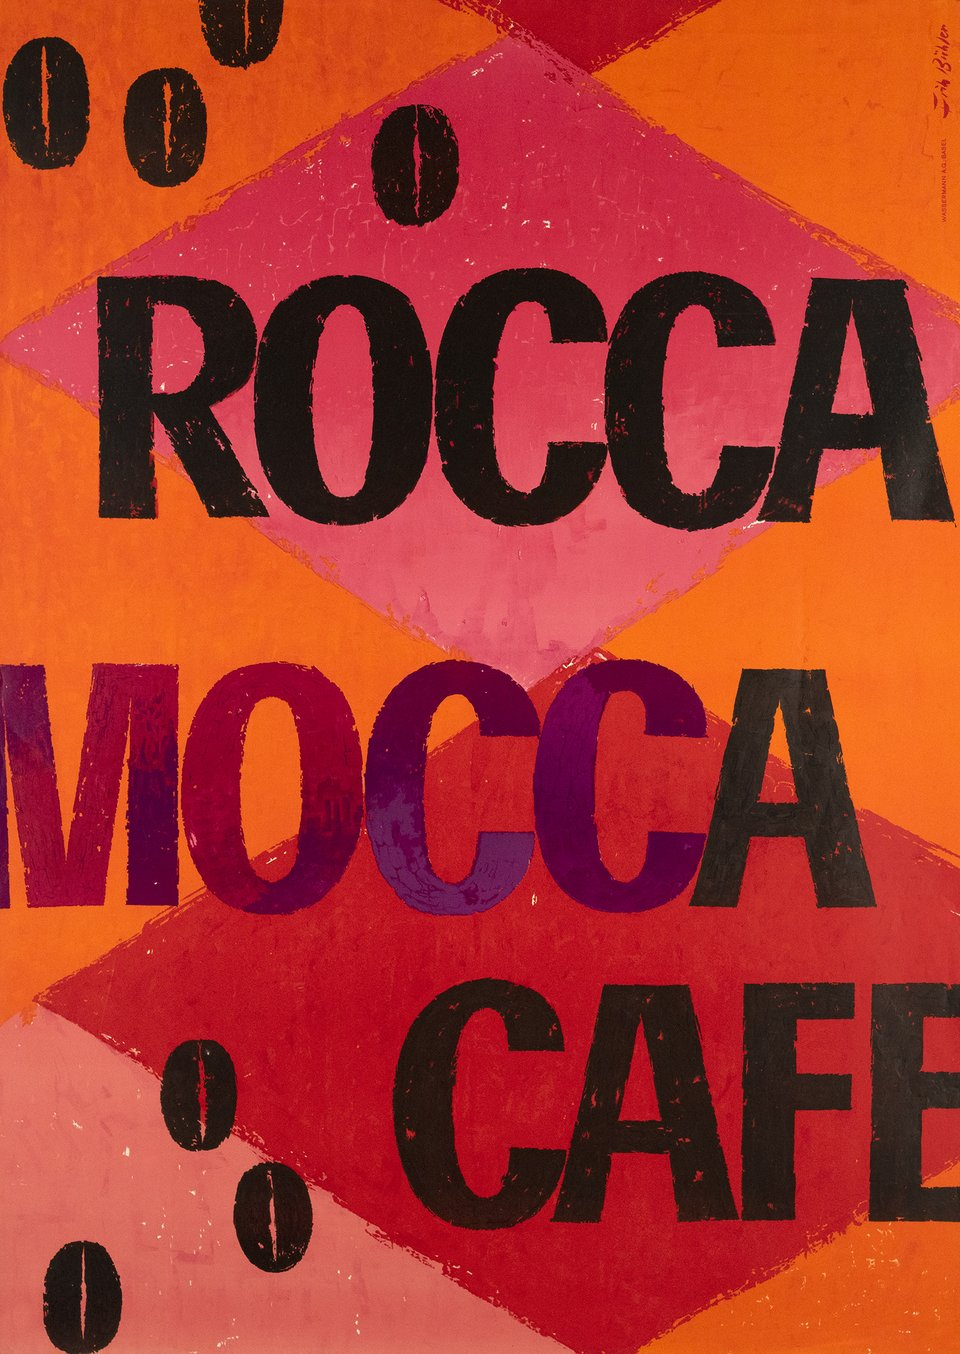 Rocca Mocca Cafe – Affiche ancienne – Fritz BUHLER – 1958